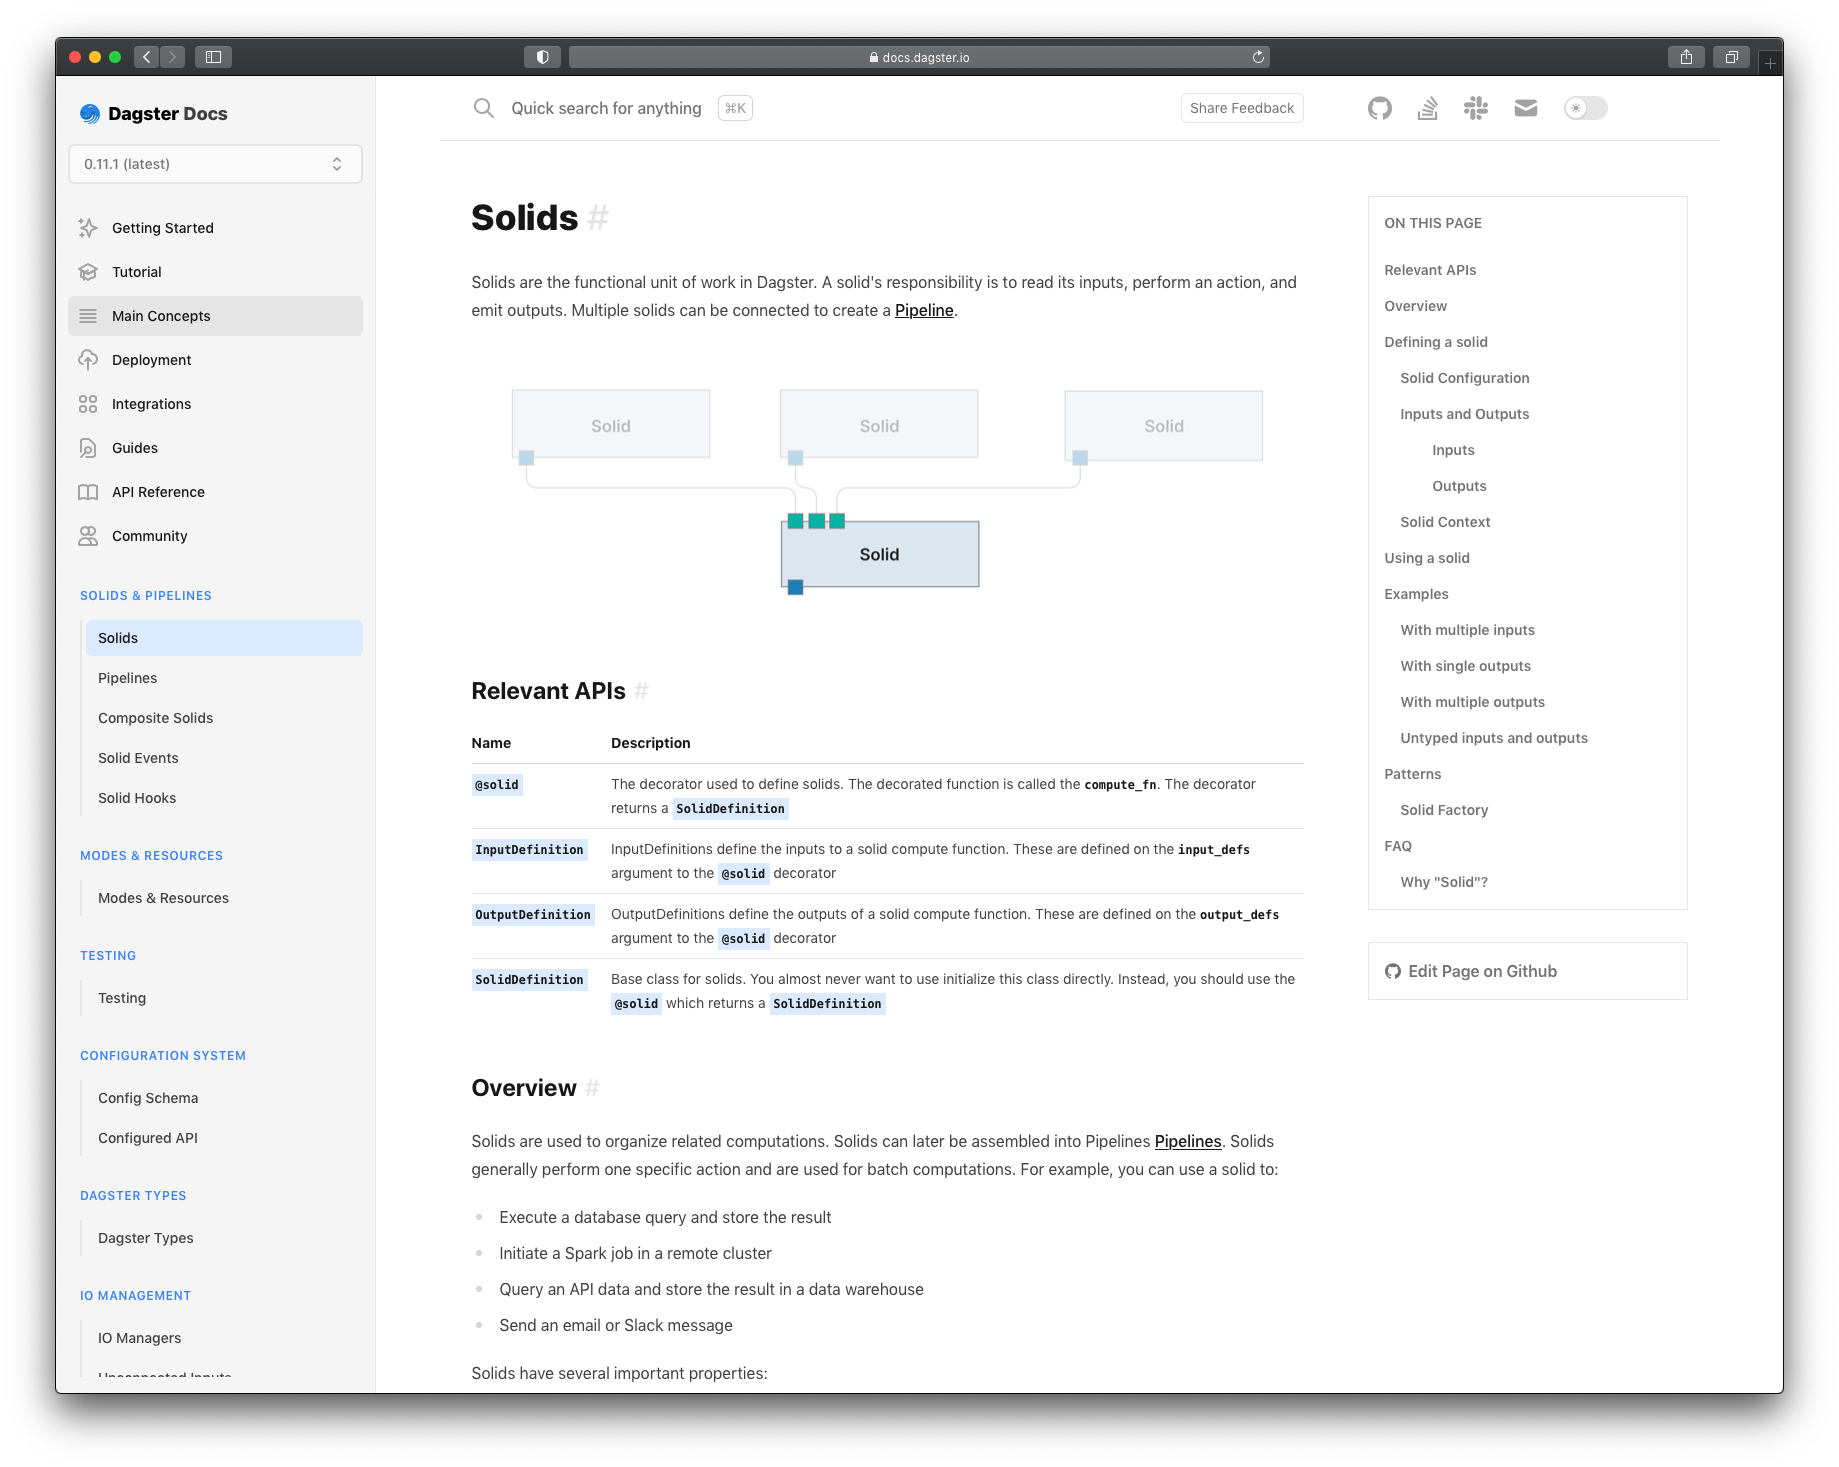 A new concepts page in the Dagster documentation